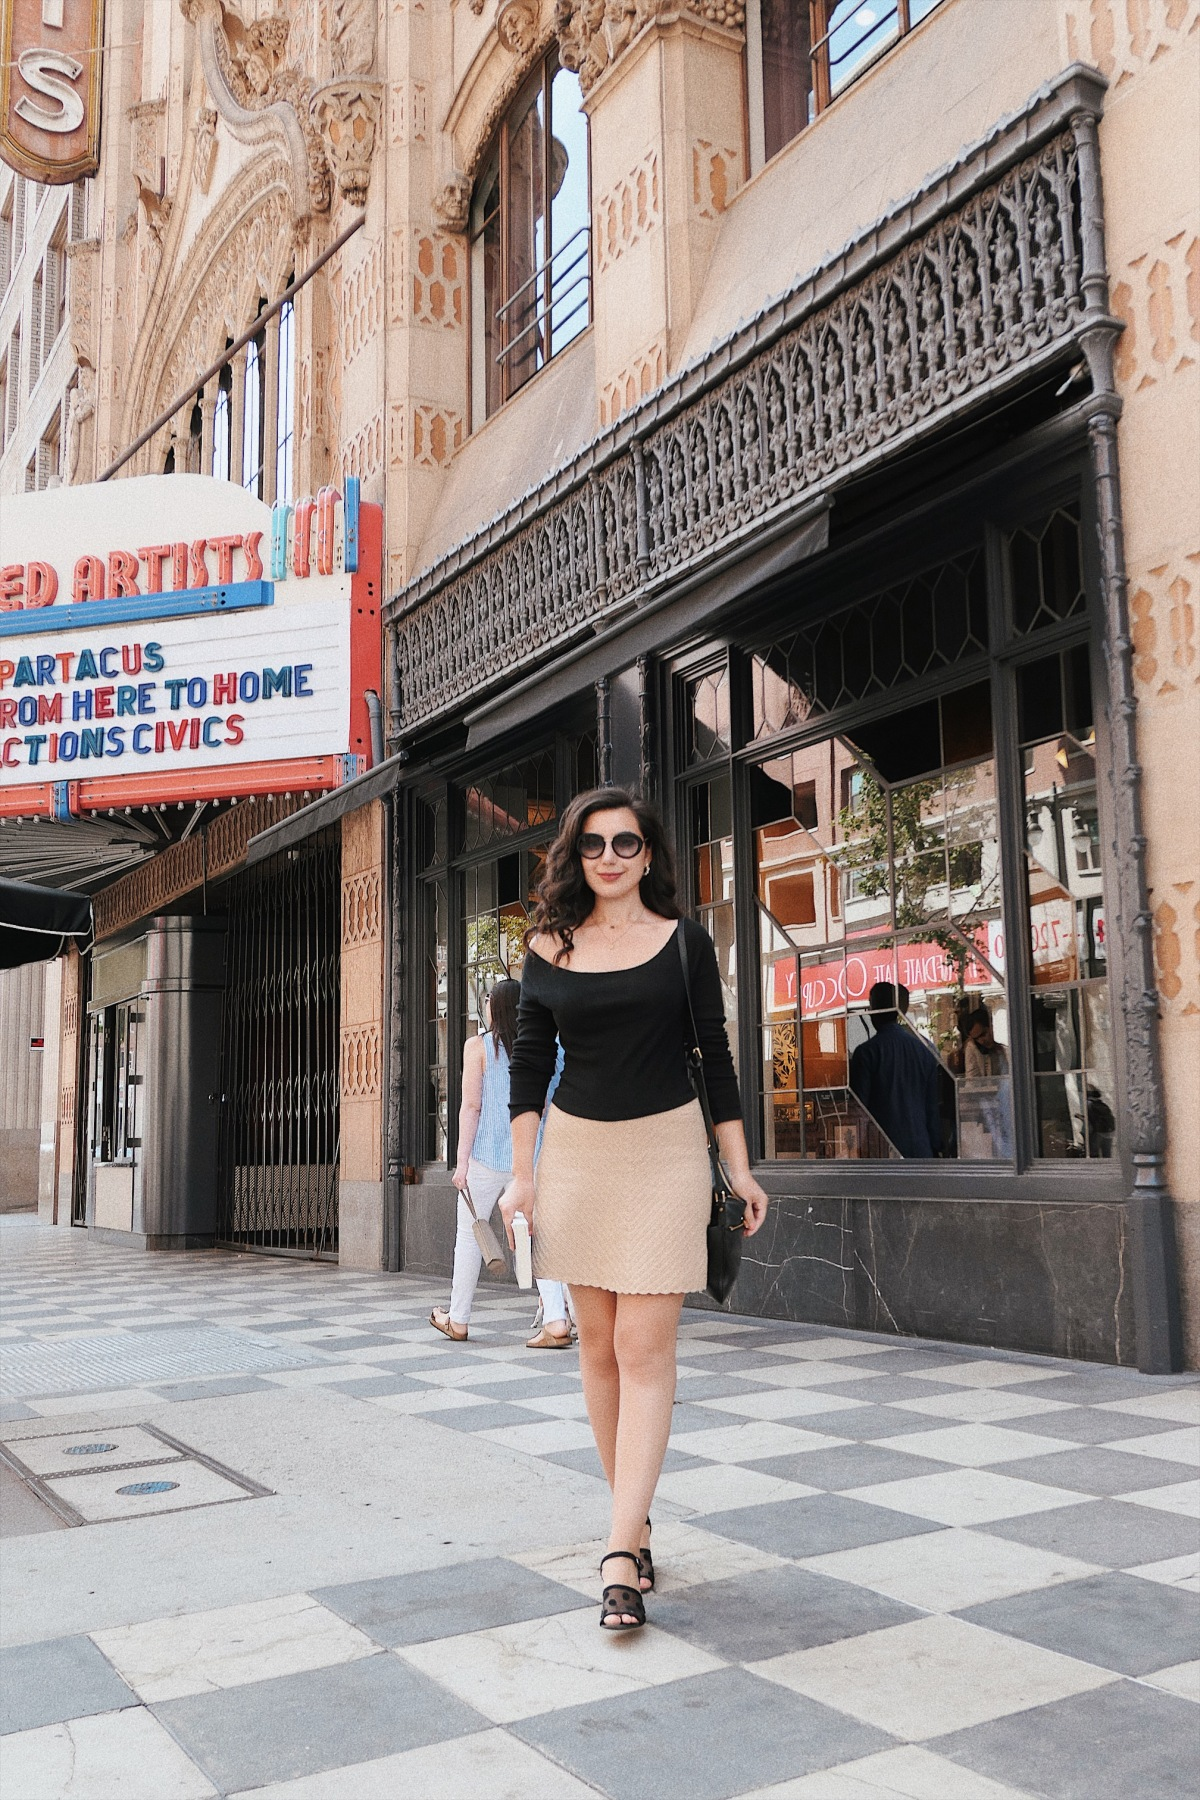 Downtown Los Angeles, DTLA, Los Angeles architecture, Los Angeles blogger, LA fashion blogger, fashion blogger, lookbook, minimalism, Calvin Klein, Michael Kors, Vintage jewelry, curly hair, Zara, what I wore, Sunday brunch, brunch outfit, summer style